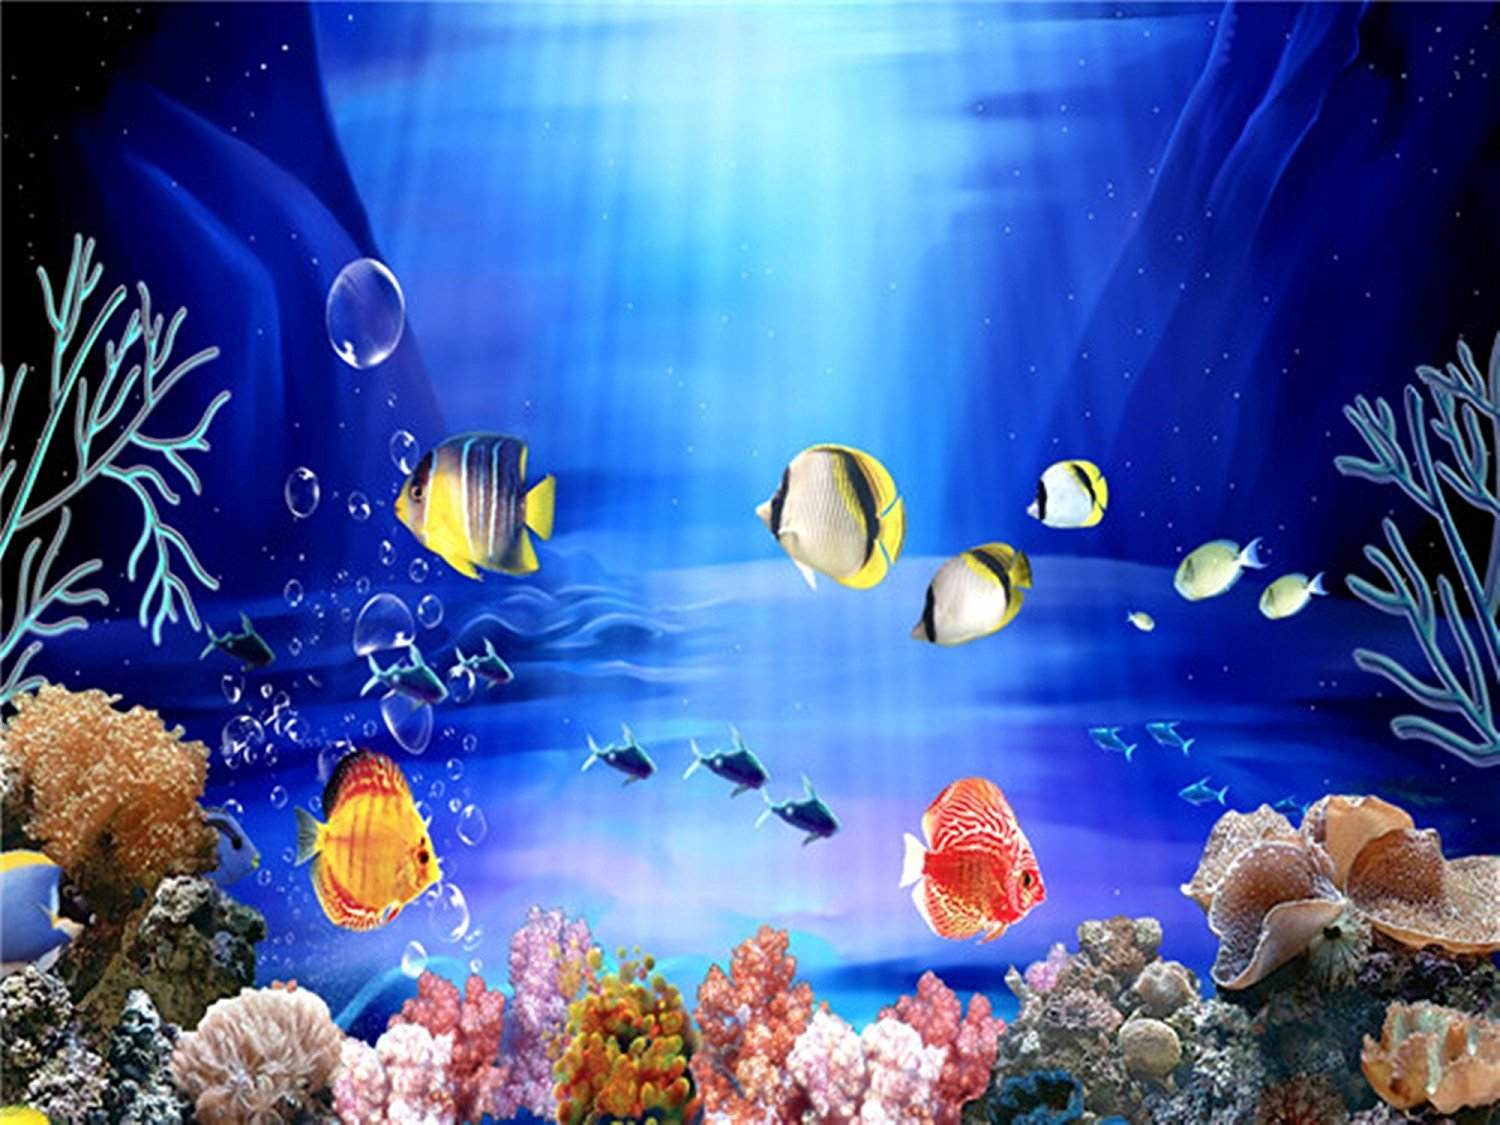 Buy Shalimar Pets Aquarium Background Design No 3 Lenght 24 Inch Height 15 Inch Online At Low Prices In India Amazon In